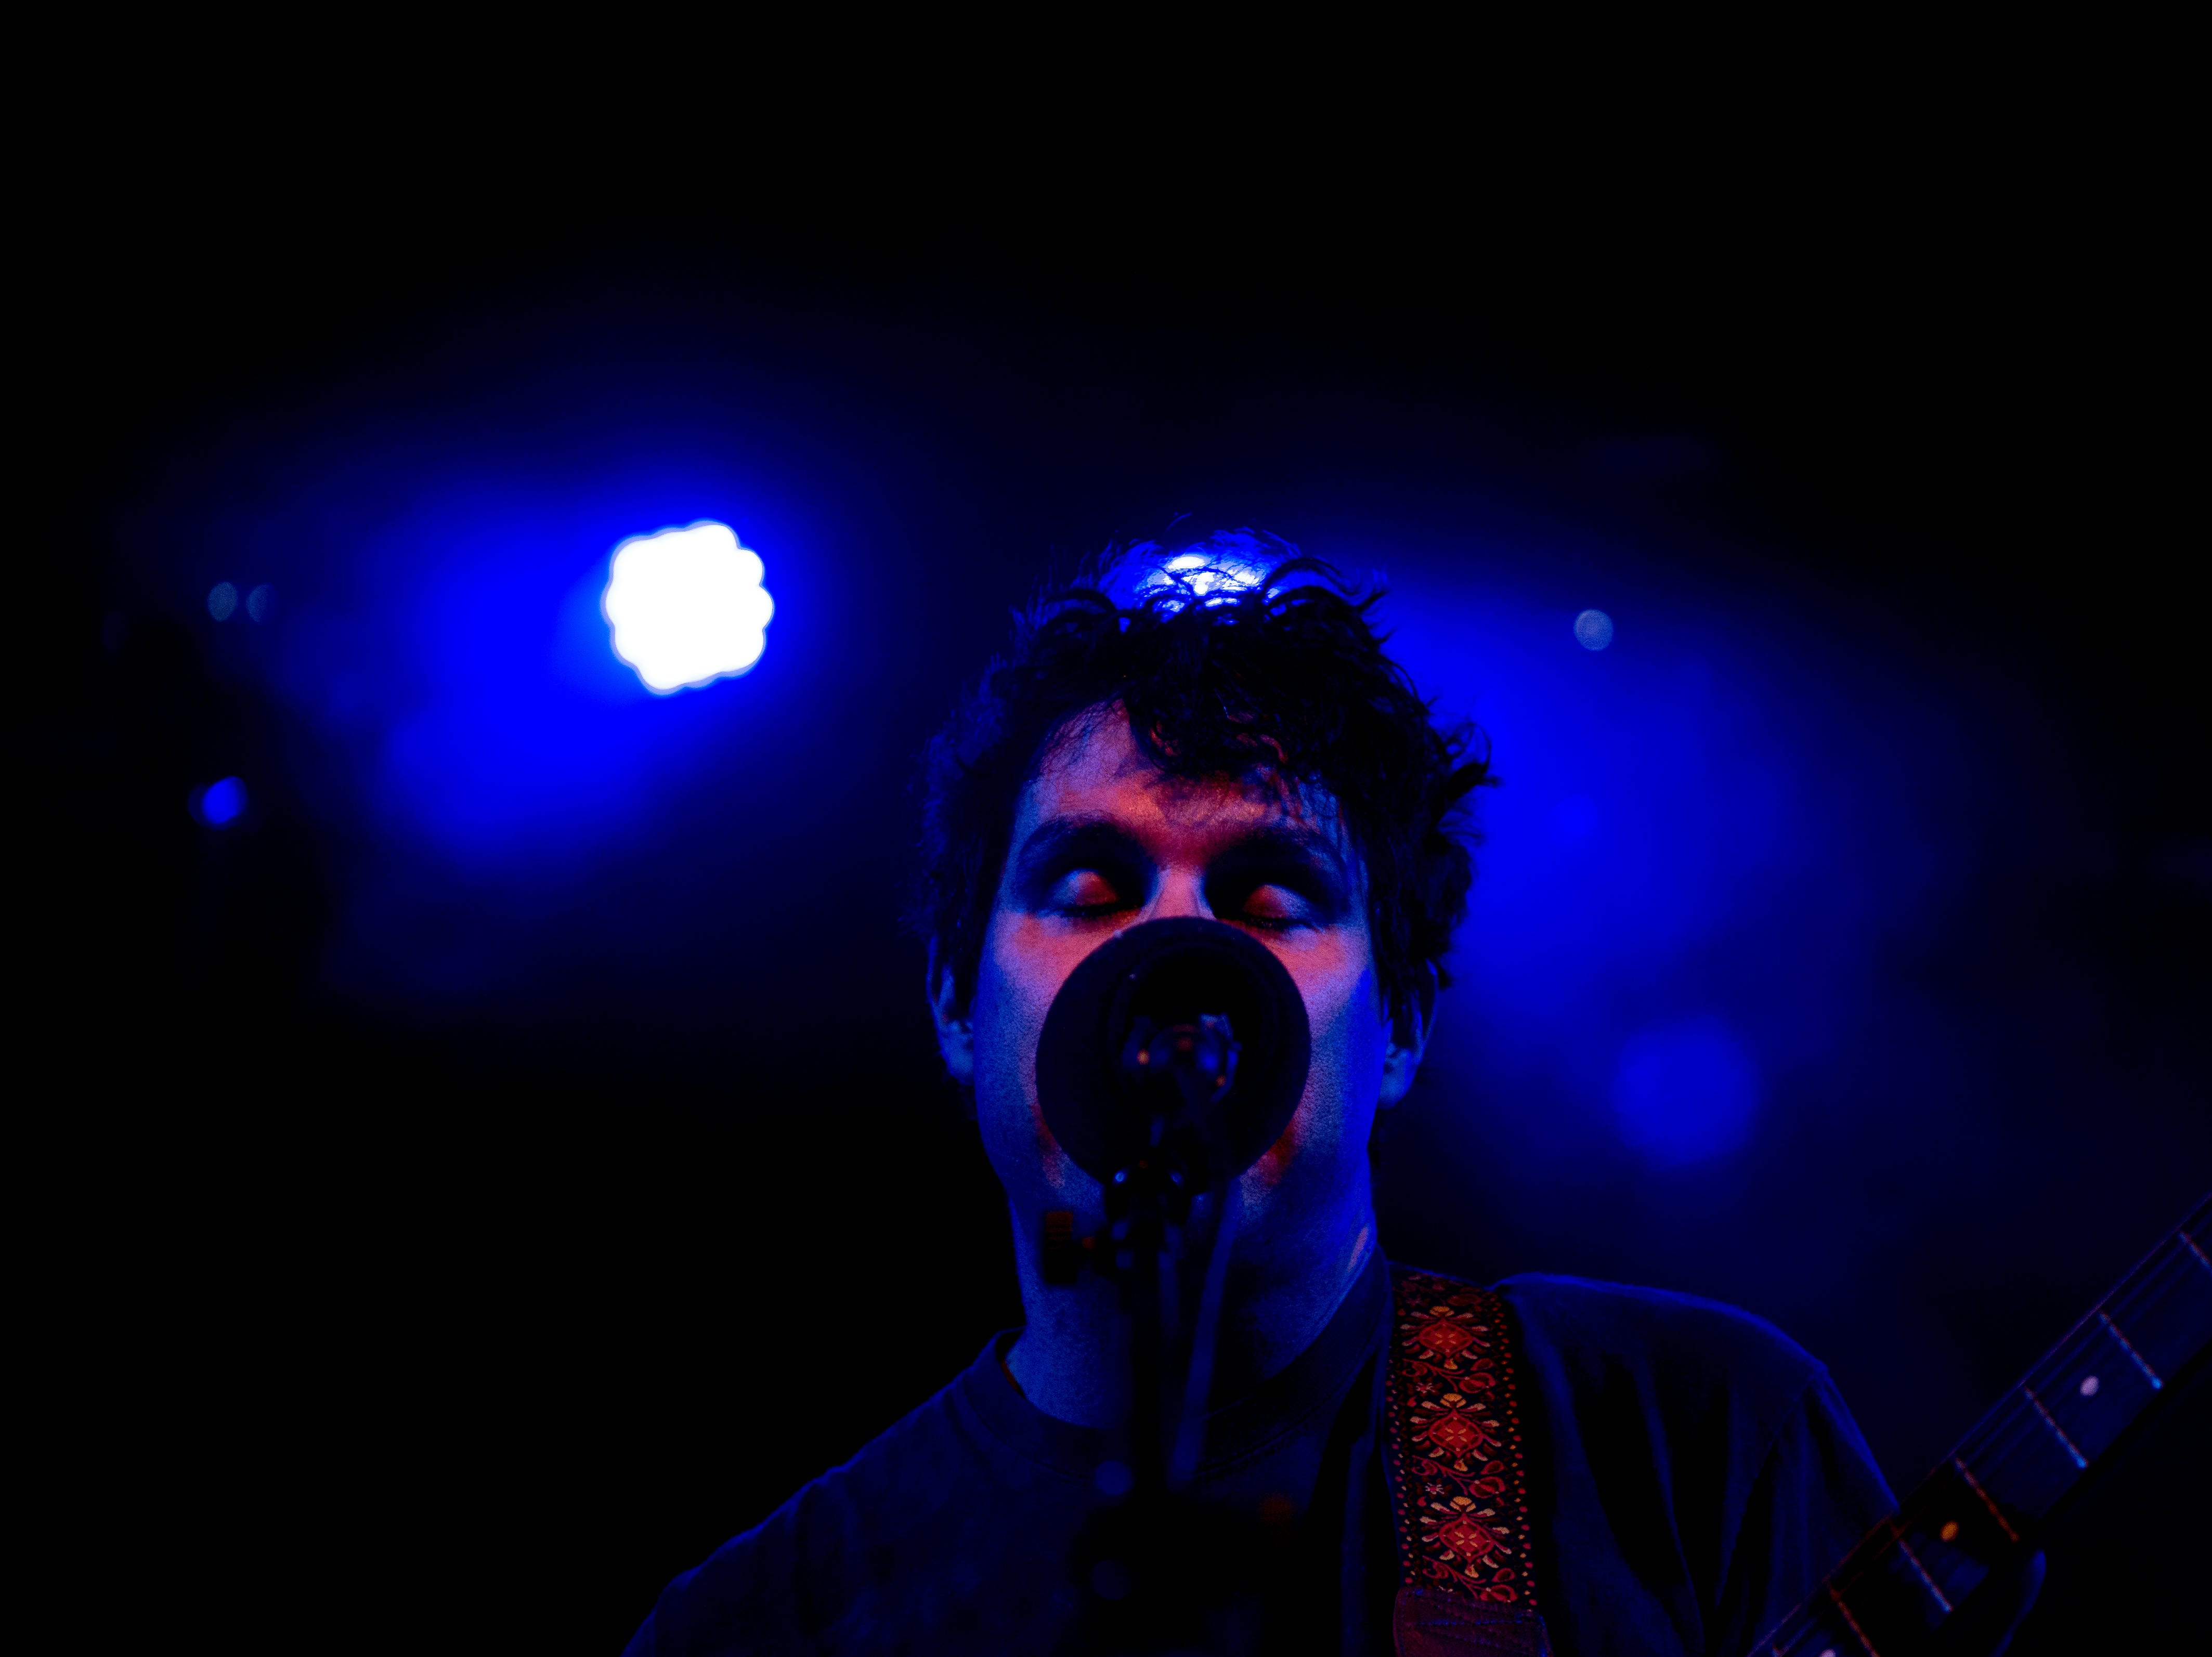 Avey Tare performs at the Mill & Mine during Big Ears Festival 2019 in Knoxville, Tennessee on Thursday, March 21, 2019.